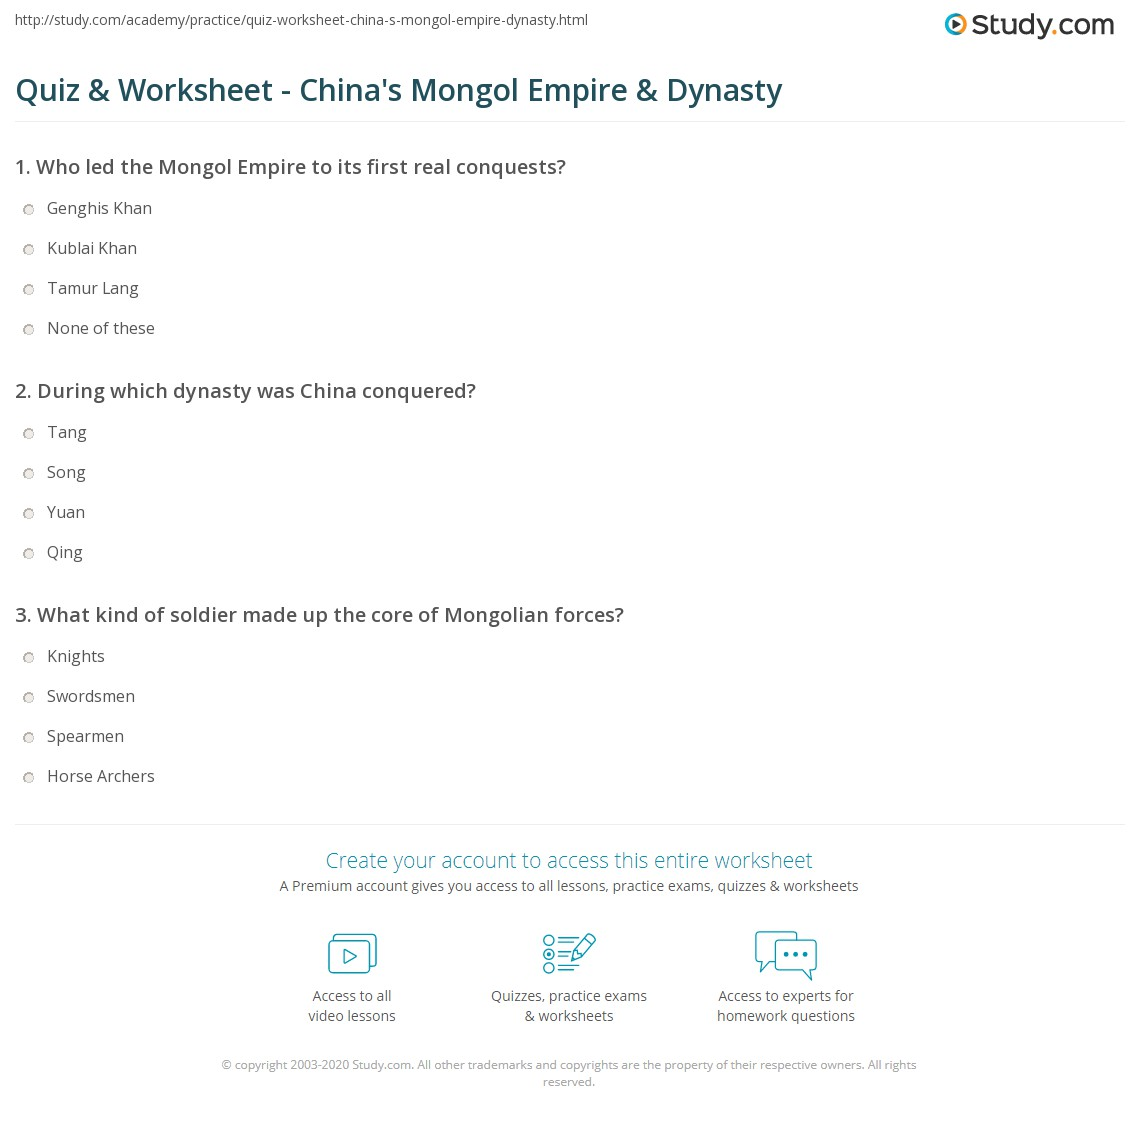 quiz worksheet china 39 s mongol empire dynasty. Black Bedroom Furniture Sets. Home Design Ideas